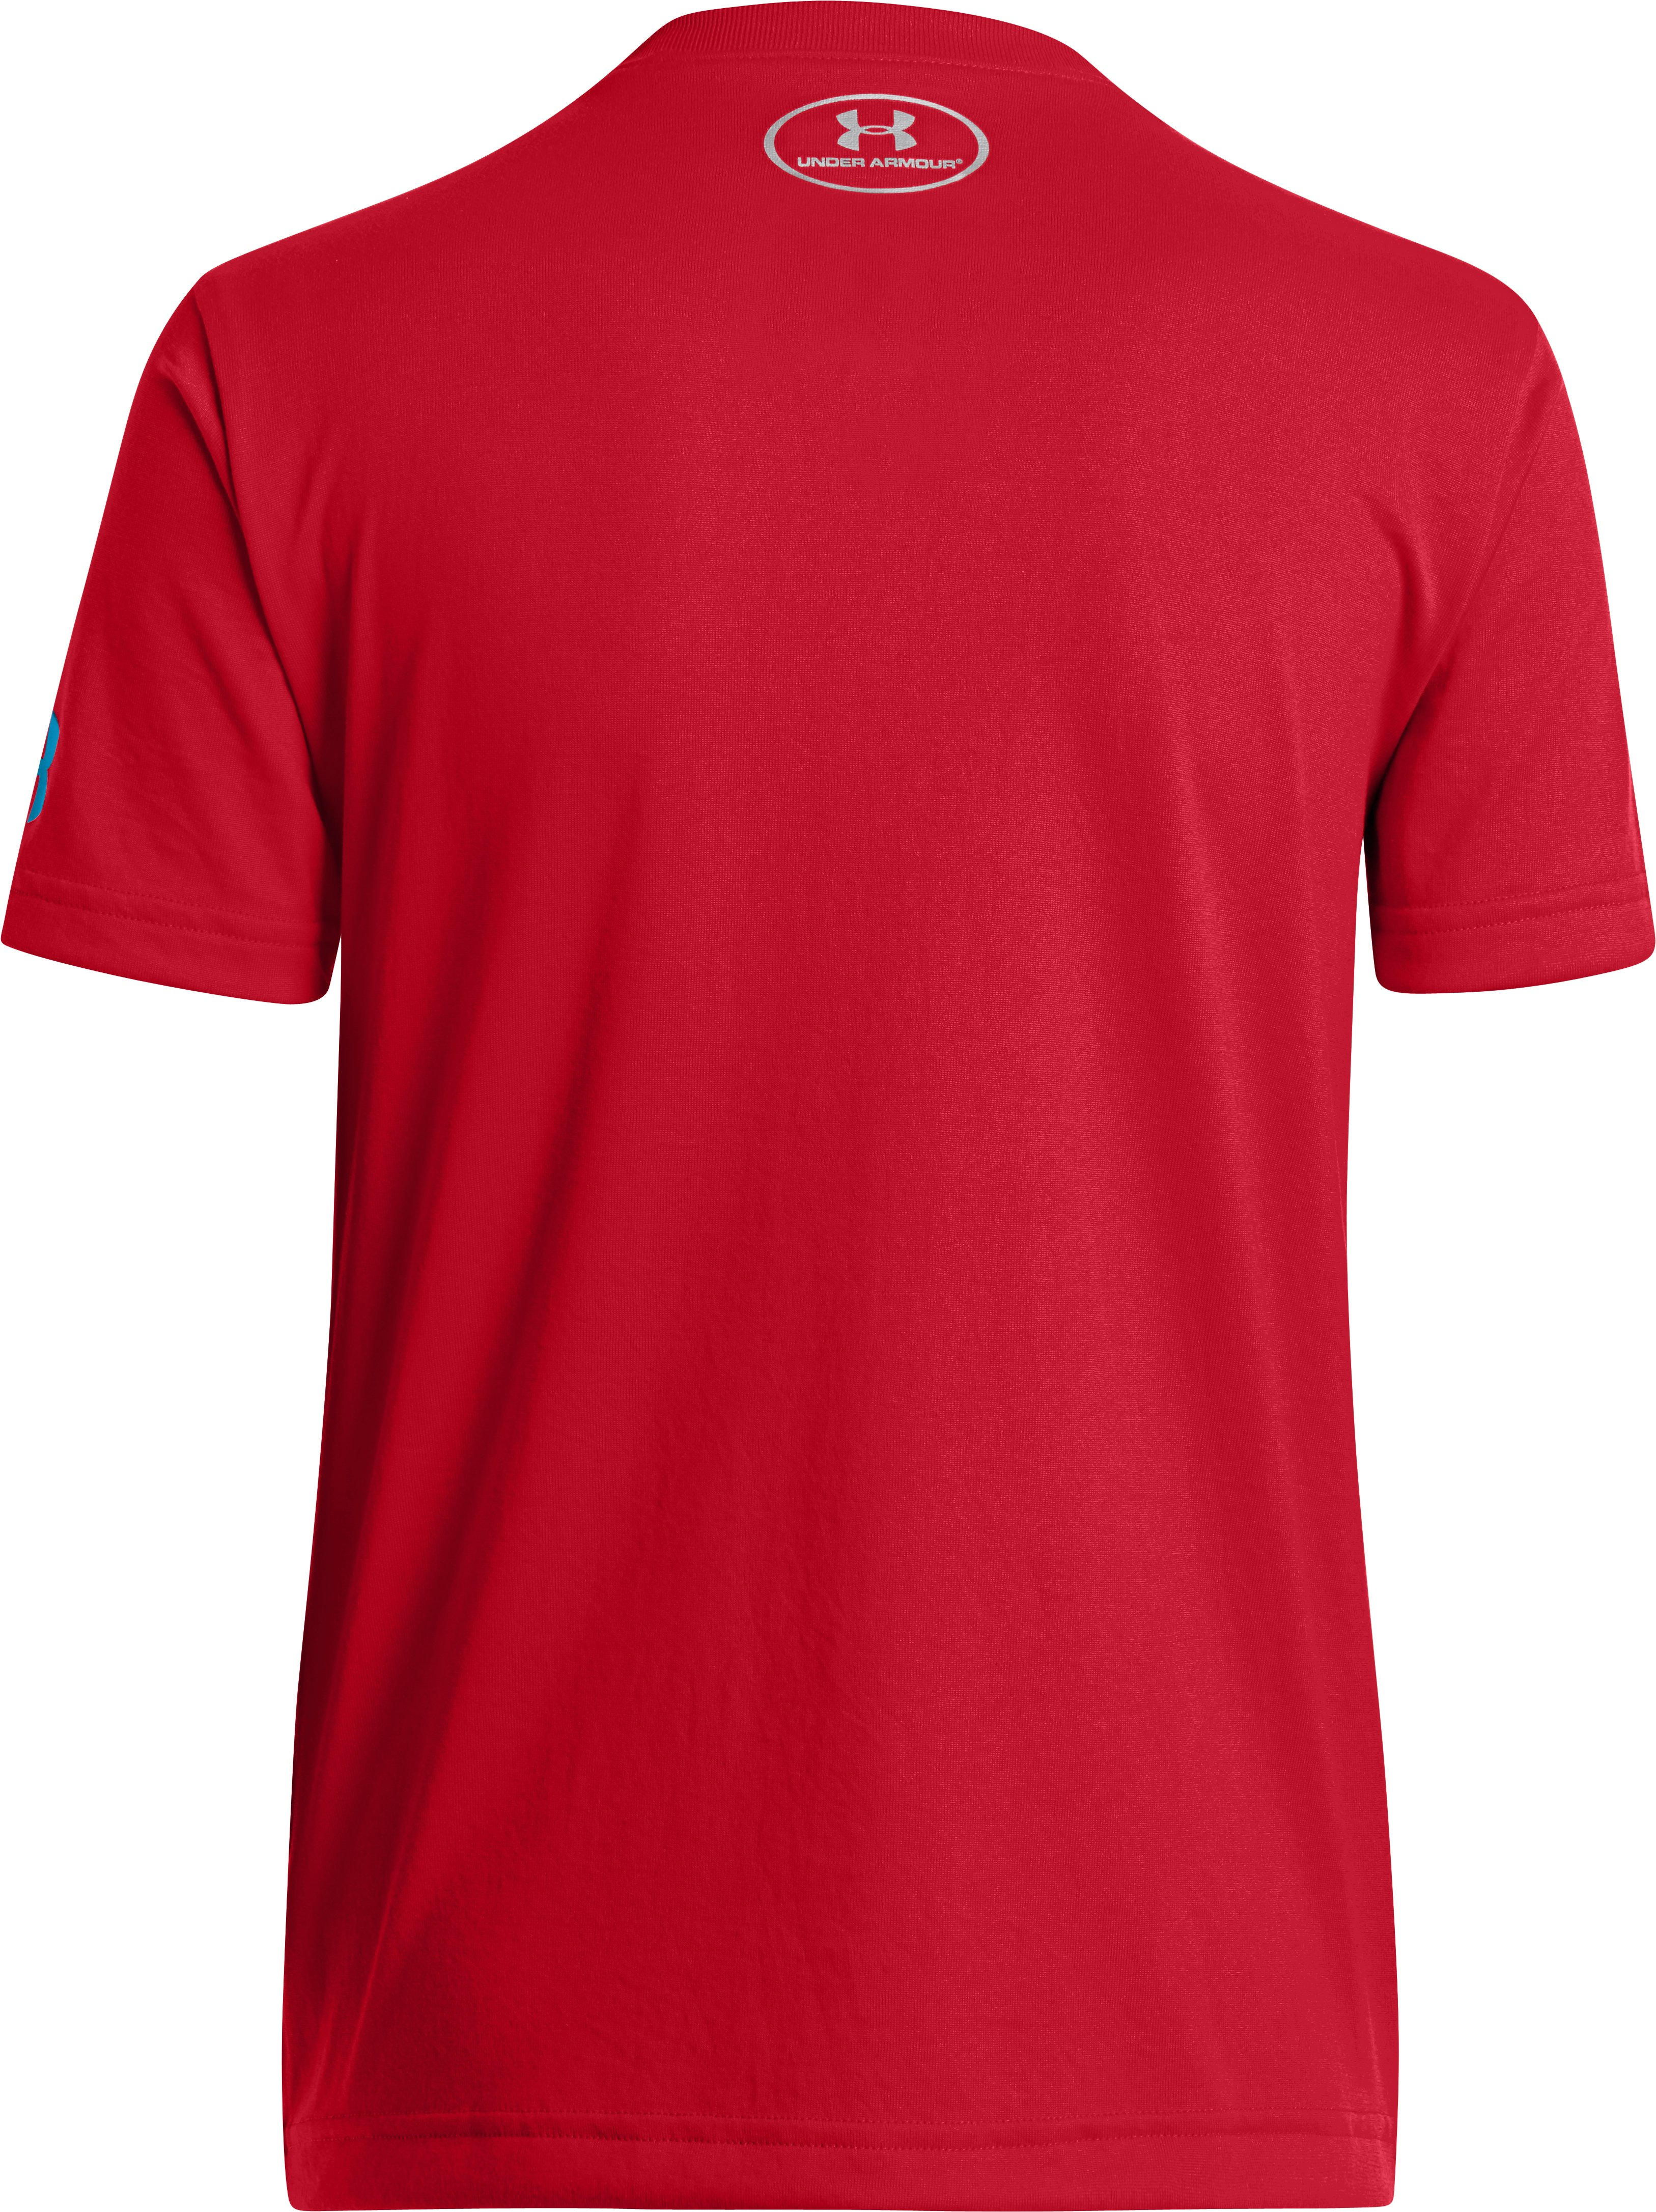 Boys' Under Armour® Alter Ego Spider-Man Action T-Shirt, Red